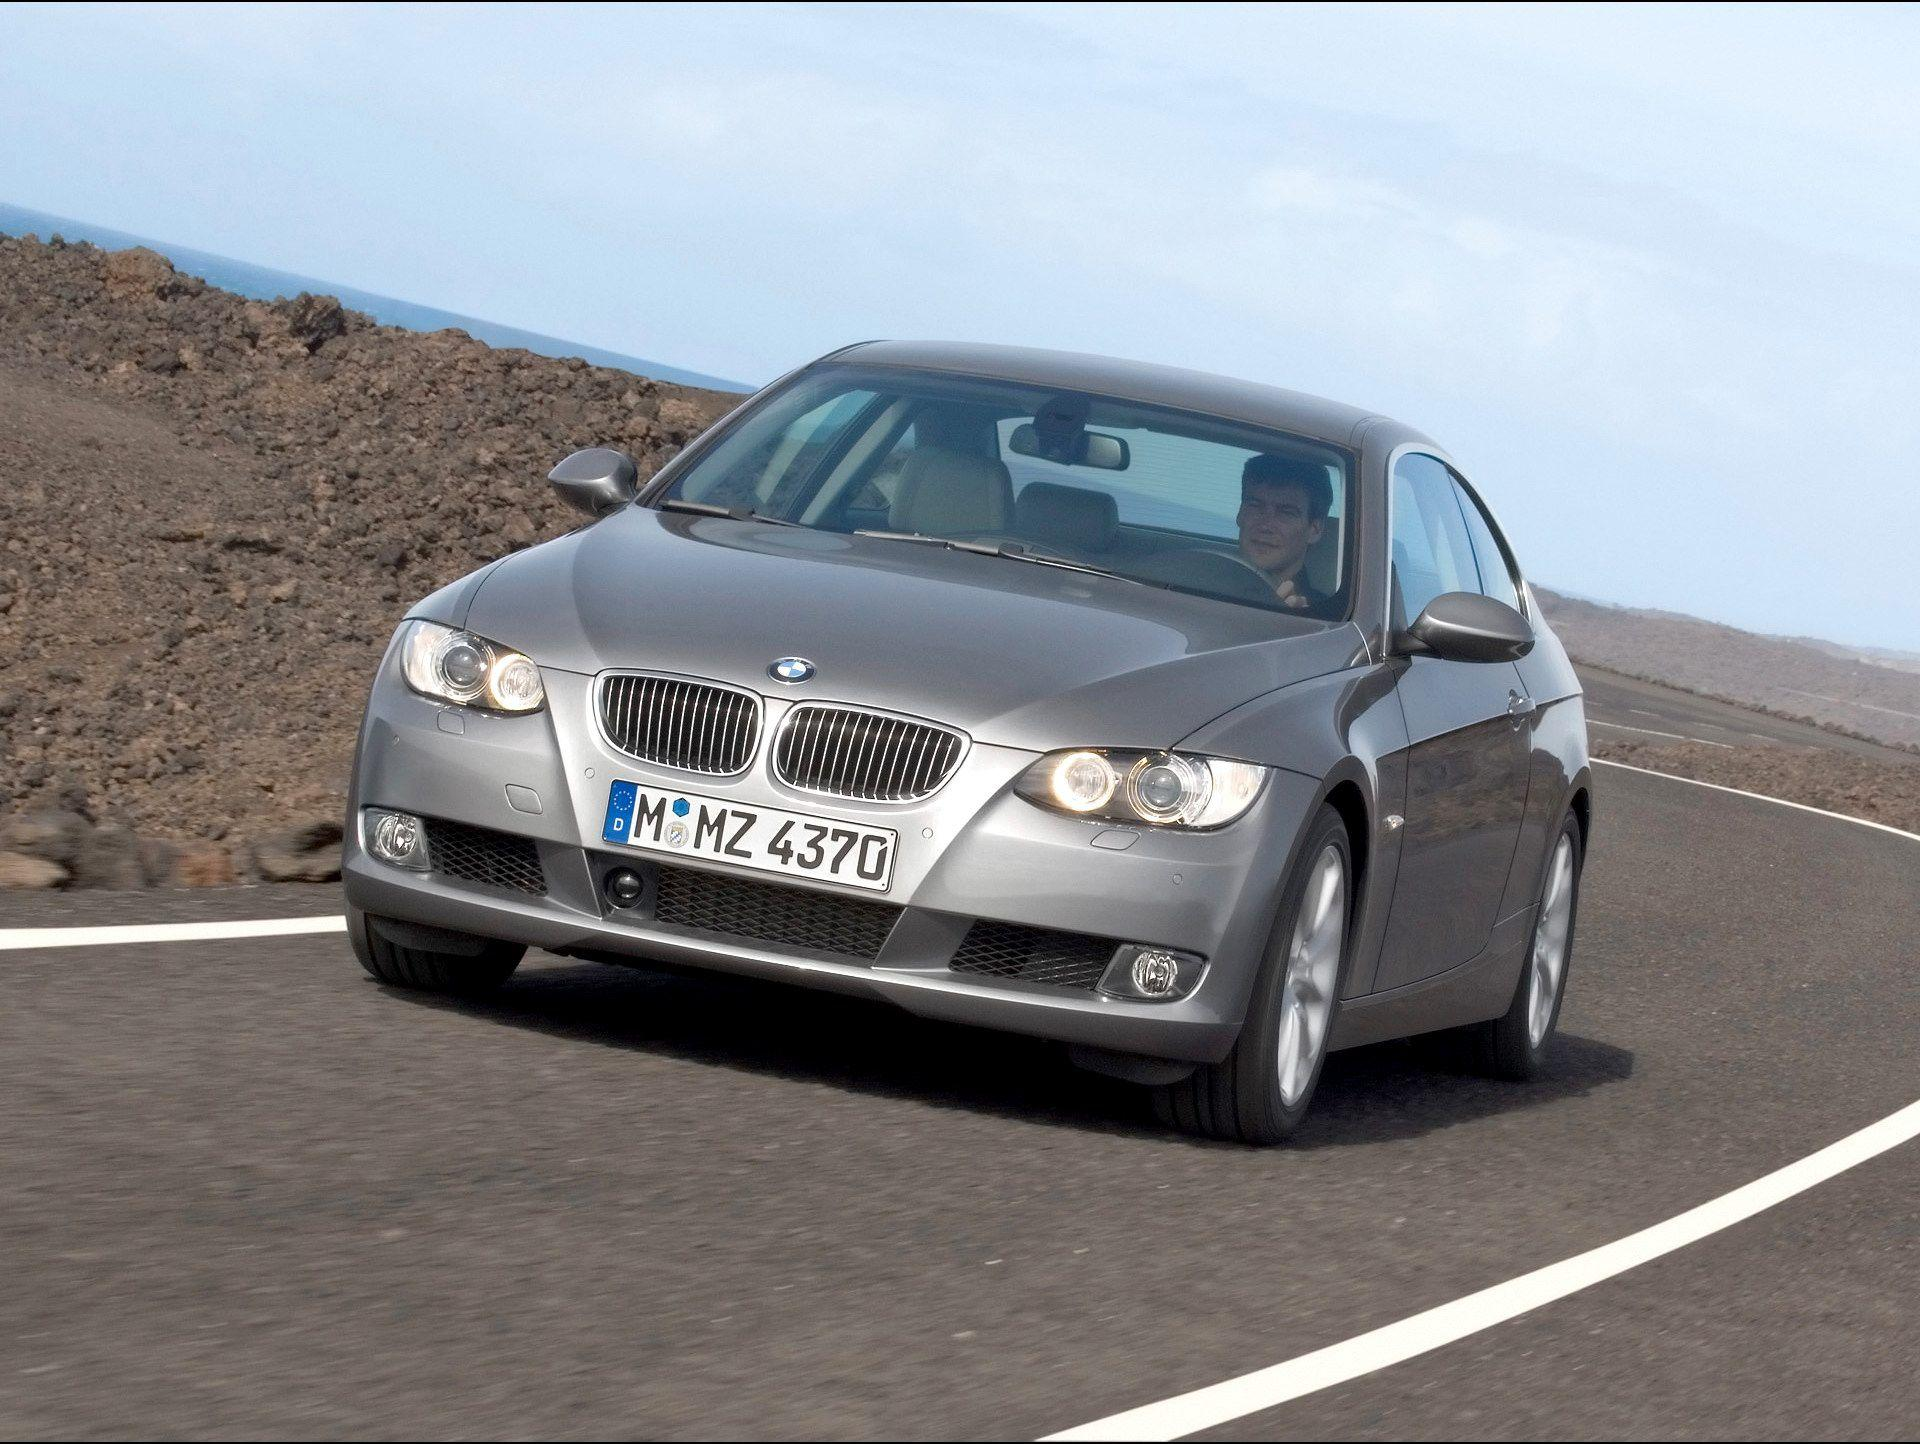 2007 BMW 335i Coupe Wallpaper 05 - 1920x1440